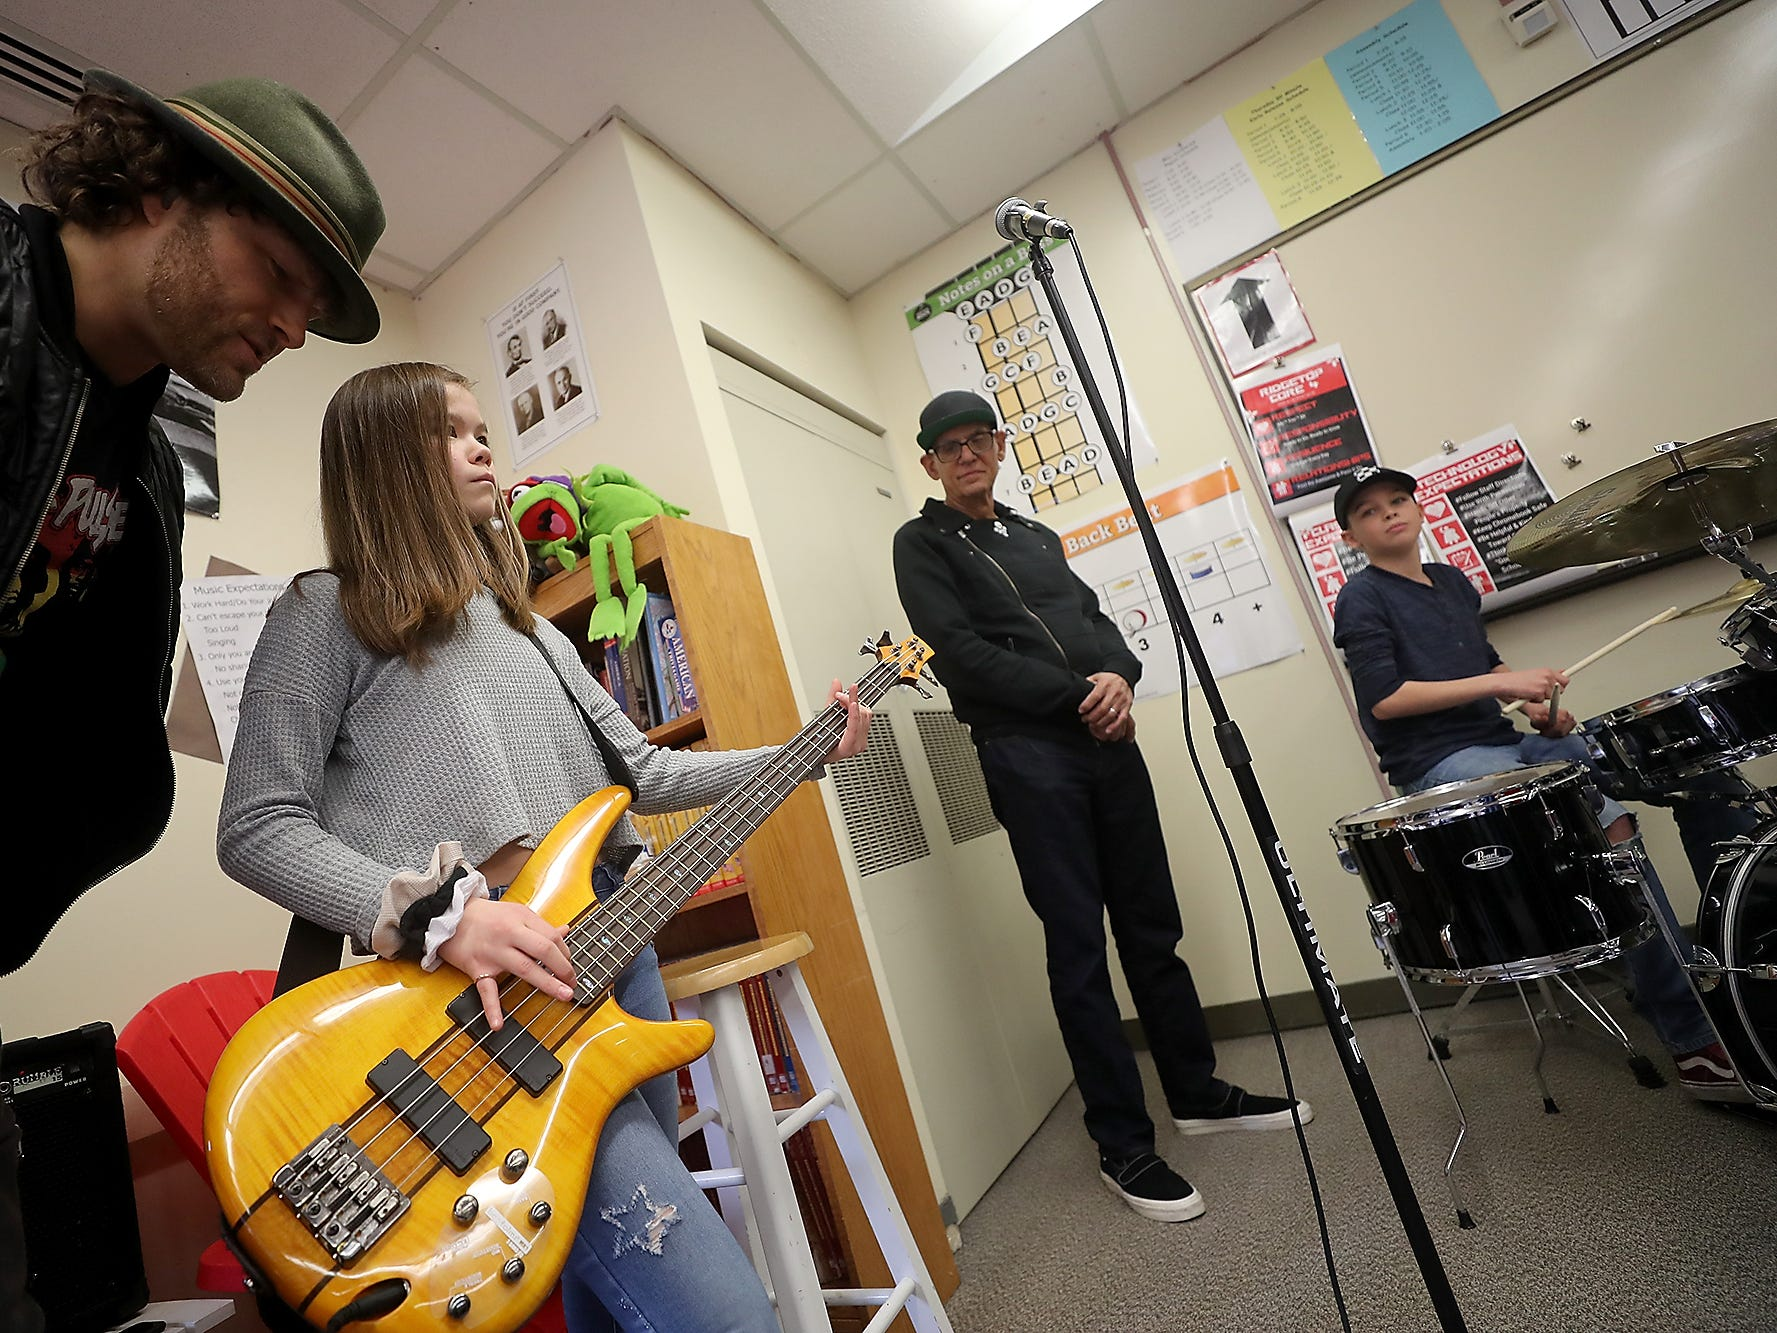 The Lords of 52nd Street bassist Malcolm Gold (left) looks over the shoulder of student Kiyomi McKenzie, 13, and gives her gives her a few pointers as she jams with her fellow student Jaiden Williams (on the drums at right) and the rest of The Lords of 52nd Street band during a visit to Ridgetop Middle School in Silverdale on Friday, March 8, 2019.